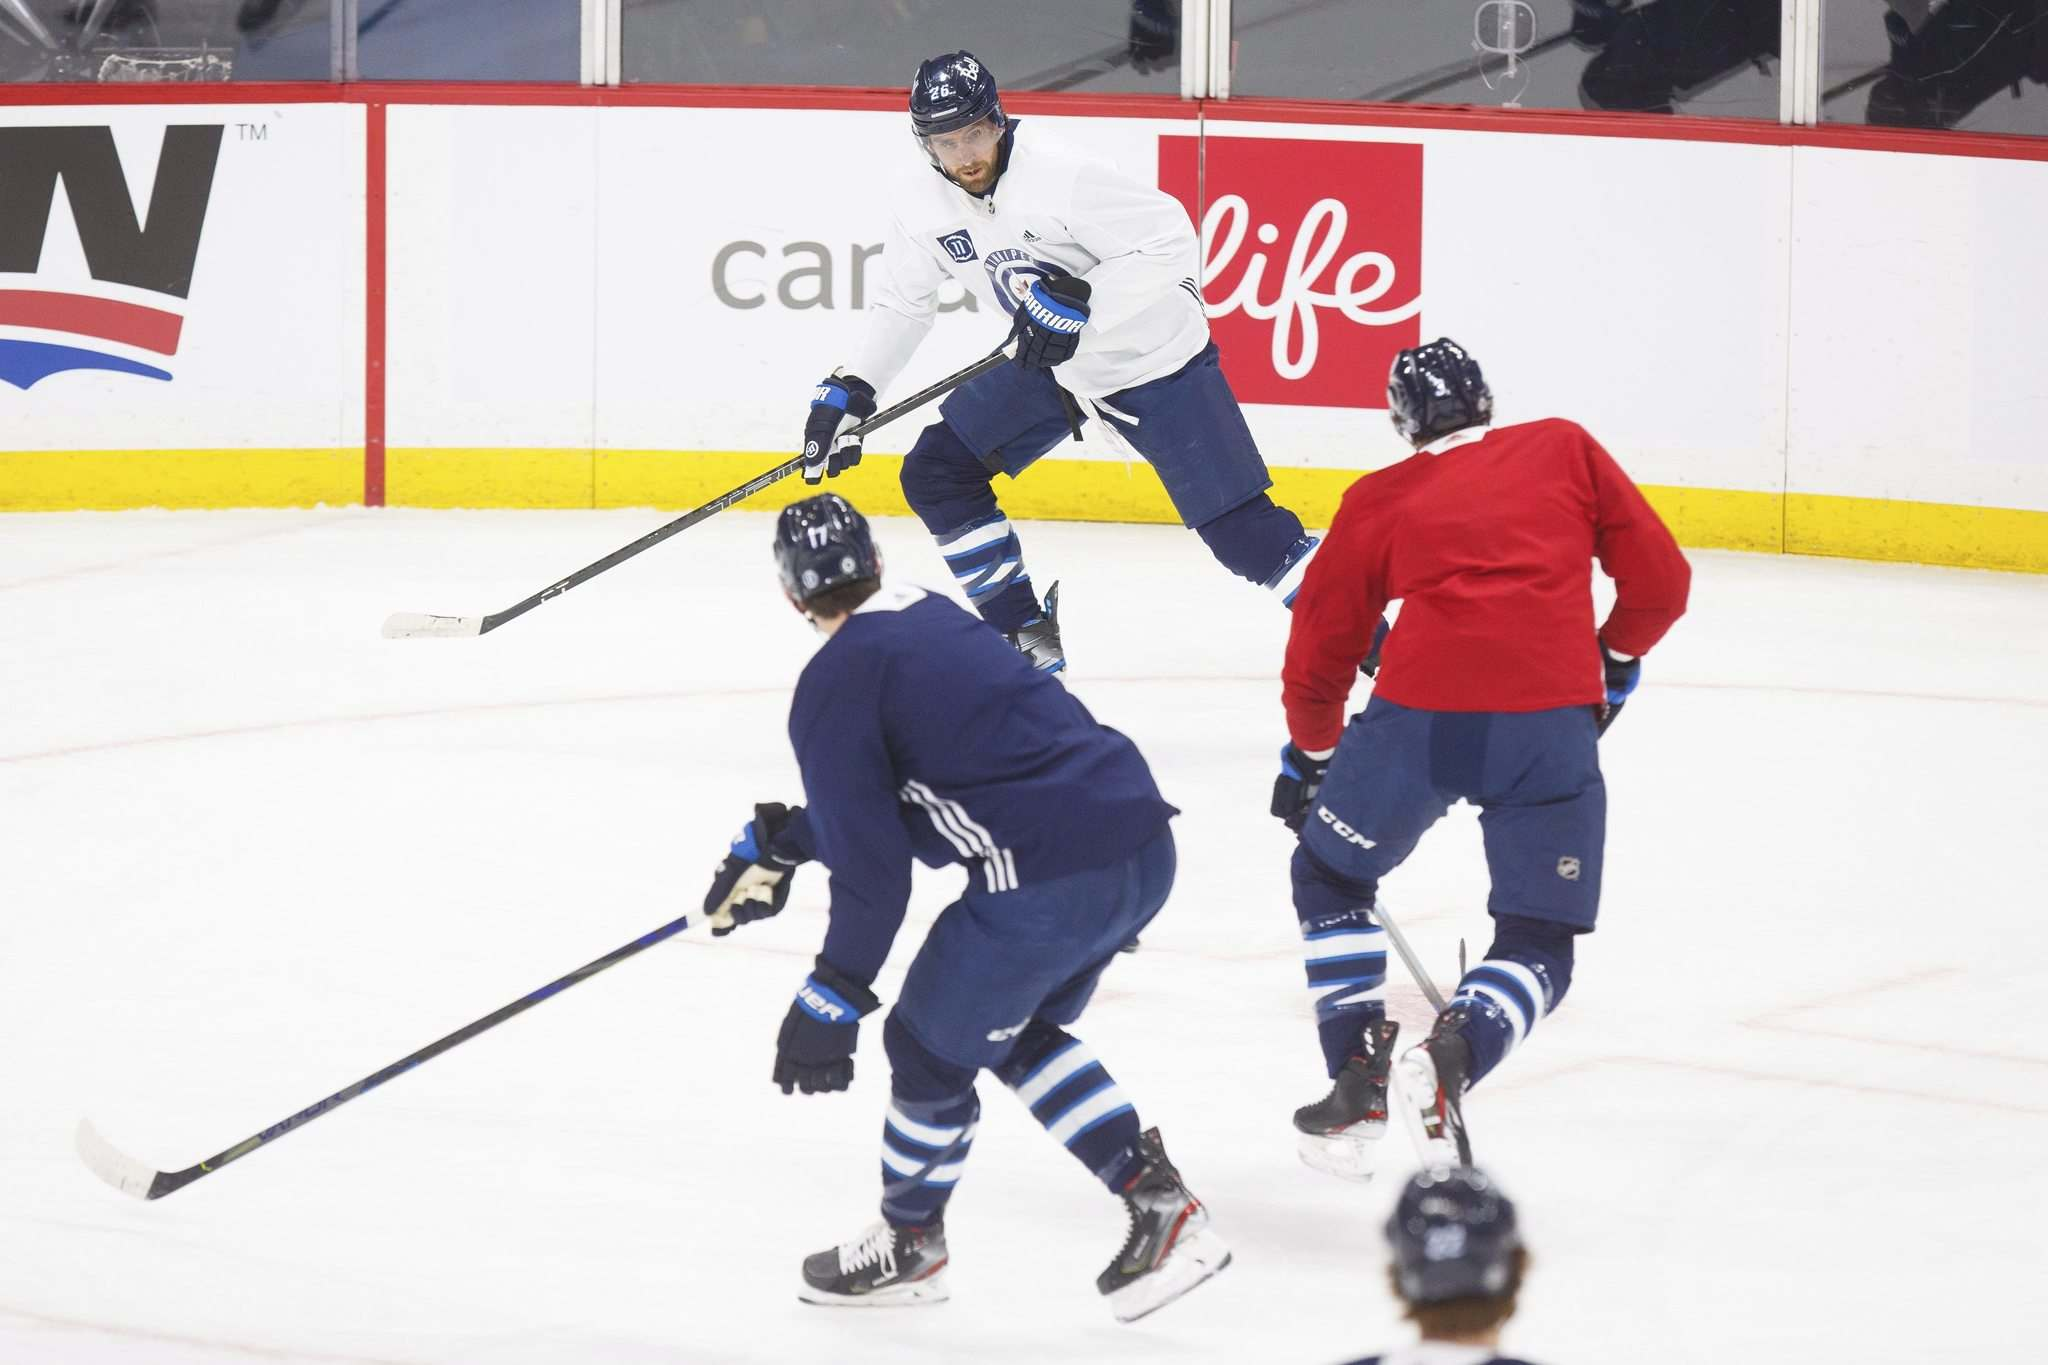 Wheeler suffered a concussion April 5 and was off skates for about five days before making incremental steps toward a return to the lineup.